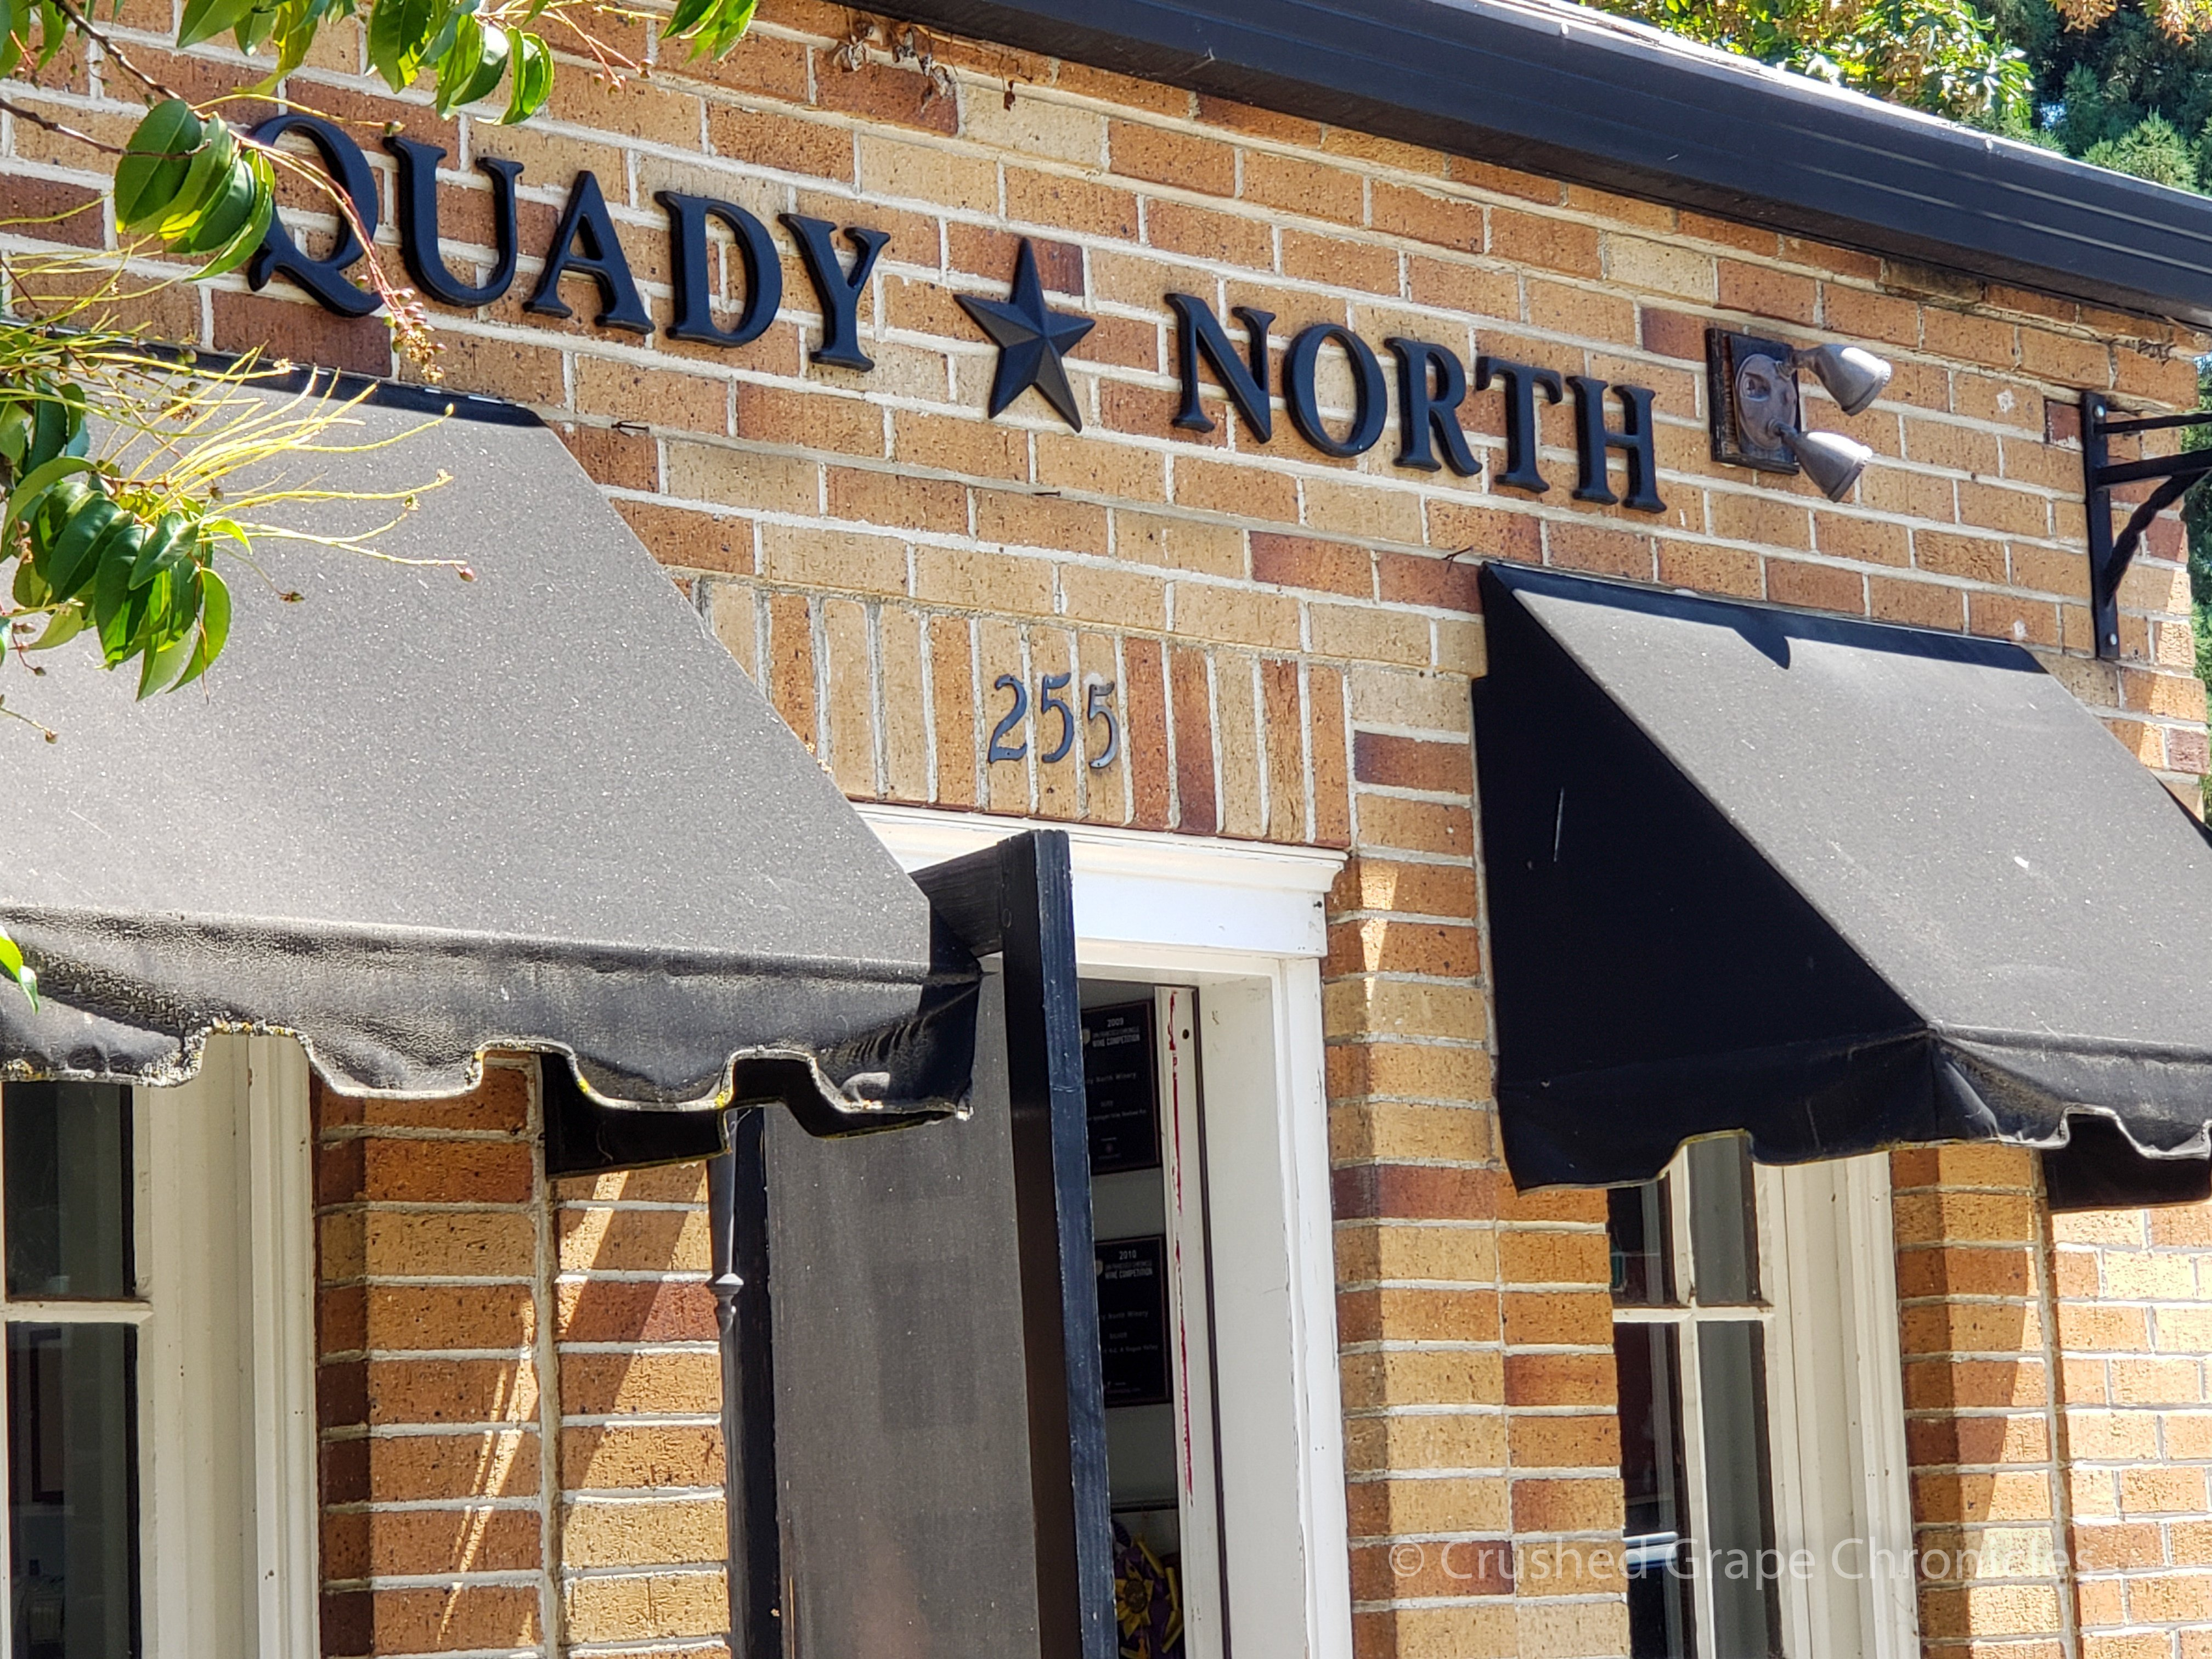 The Quady North Tasting room in Jacksonville Oregon